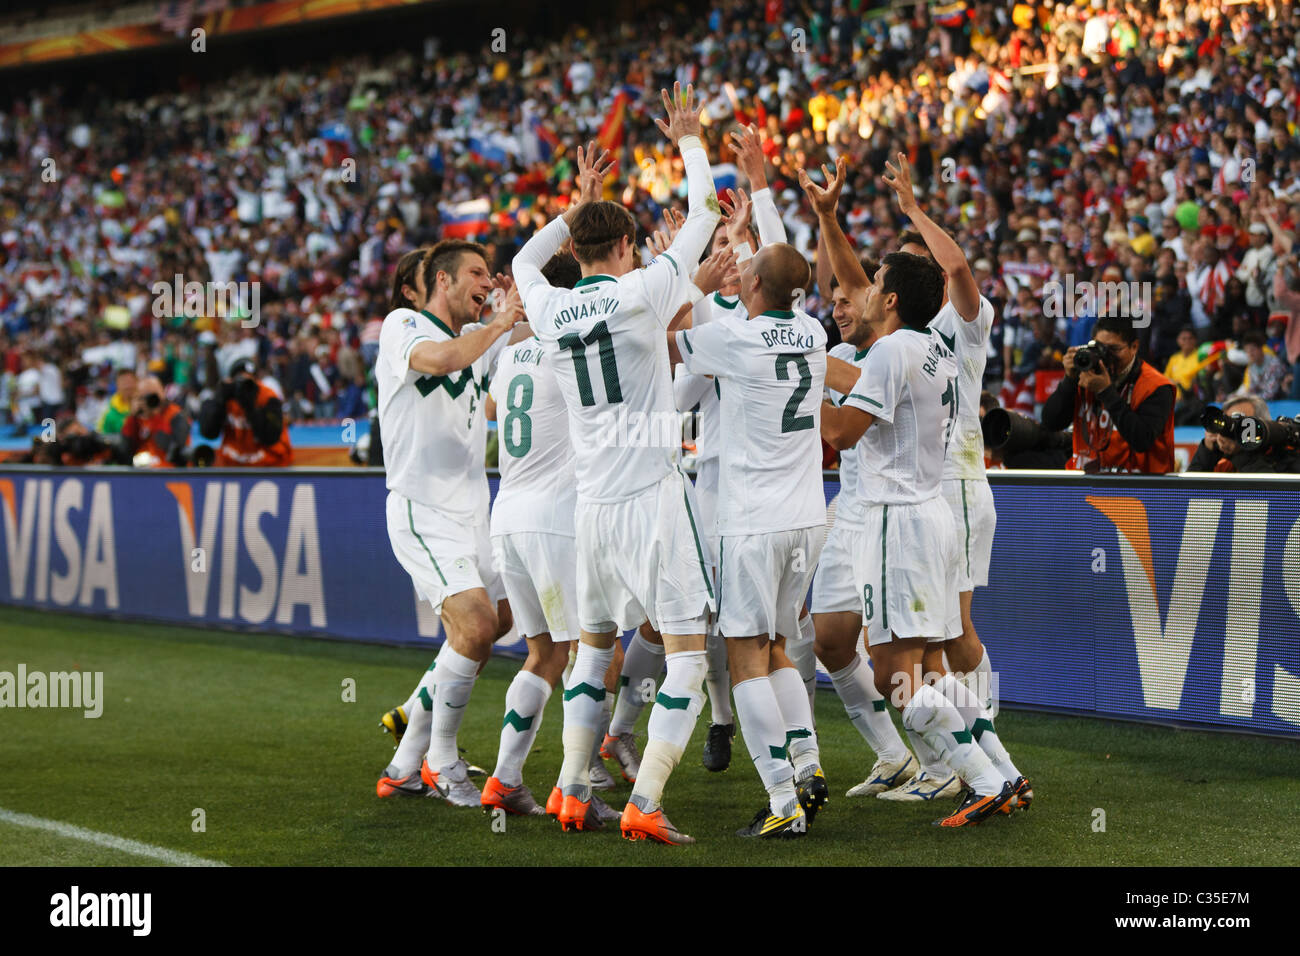 Slovenian players celebrate after scoring a goal against the United States during a 2010 FIFA World Cup football - Stock Image